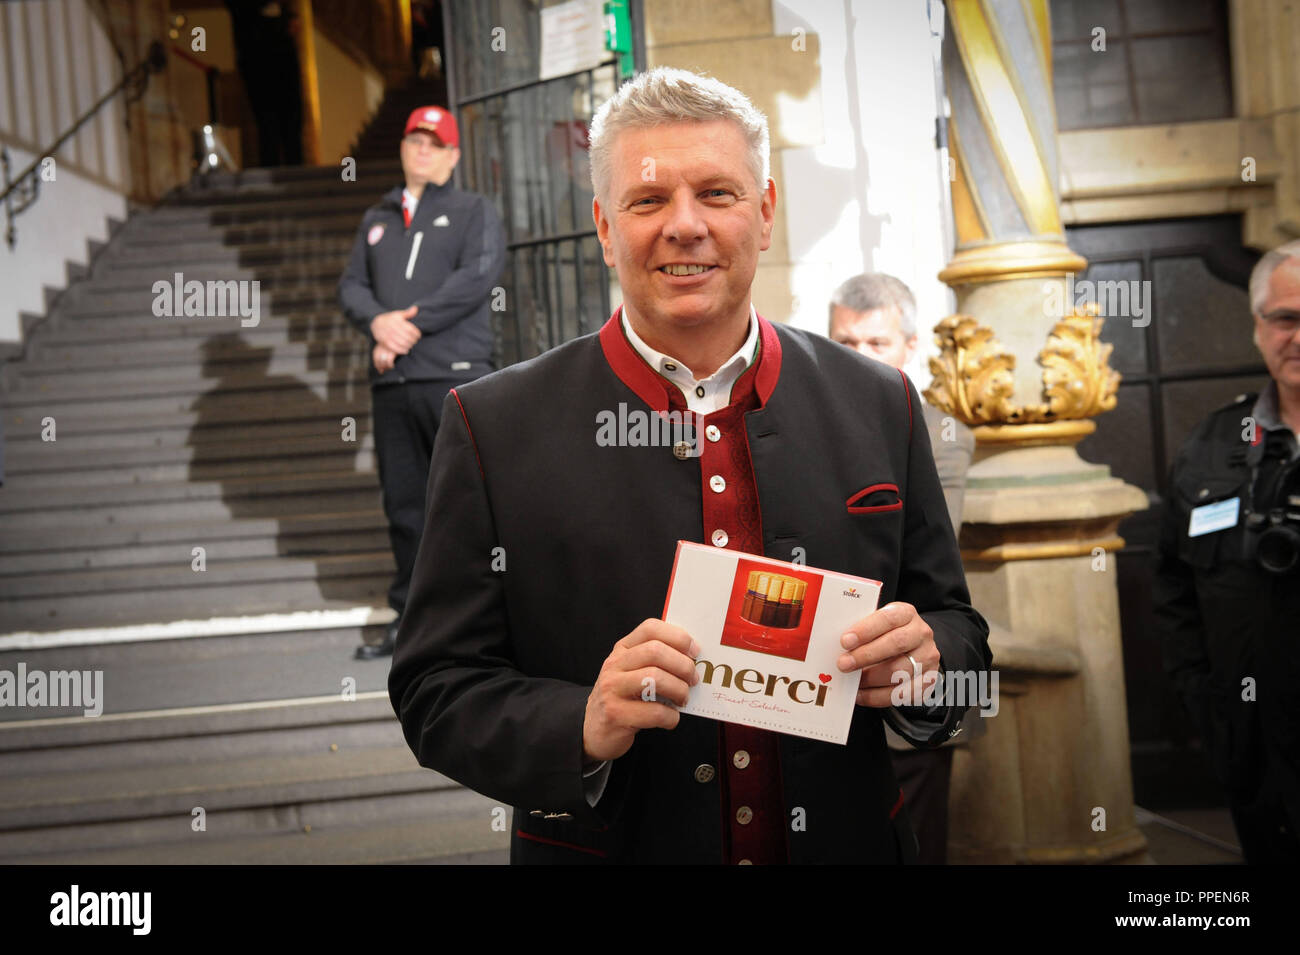 The newly elected mayor and Bayern fan Dieter Reiter welcomes for the first time in the Munich Town Hall the team of FC Bayern Munich for the championship celebration. He has received a Merci chocolate box from the football fans. - Stock Image